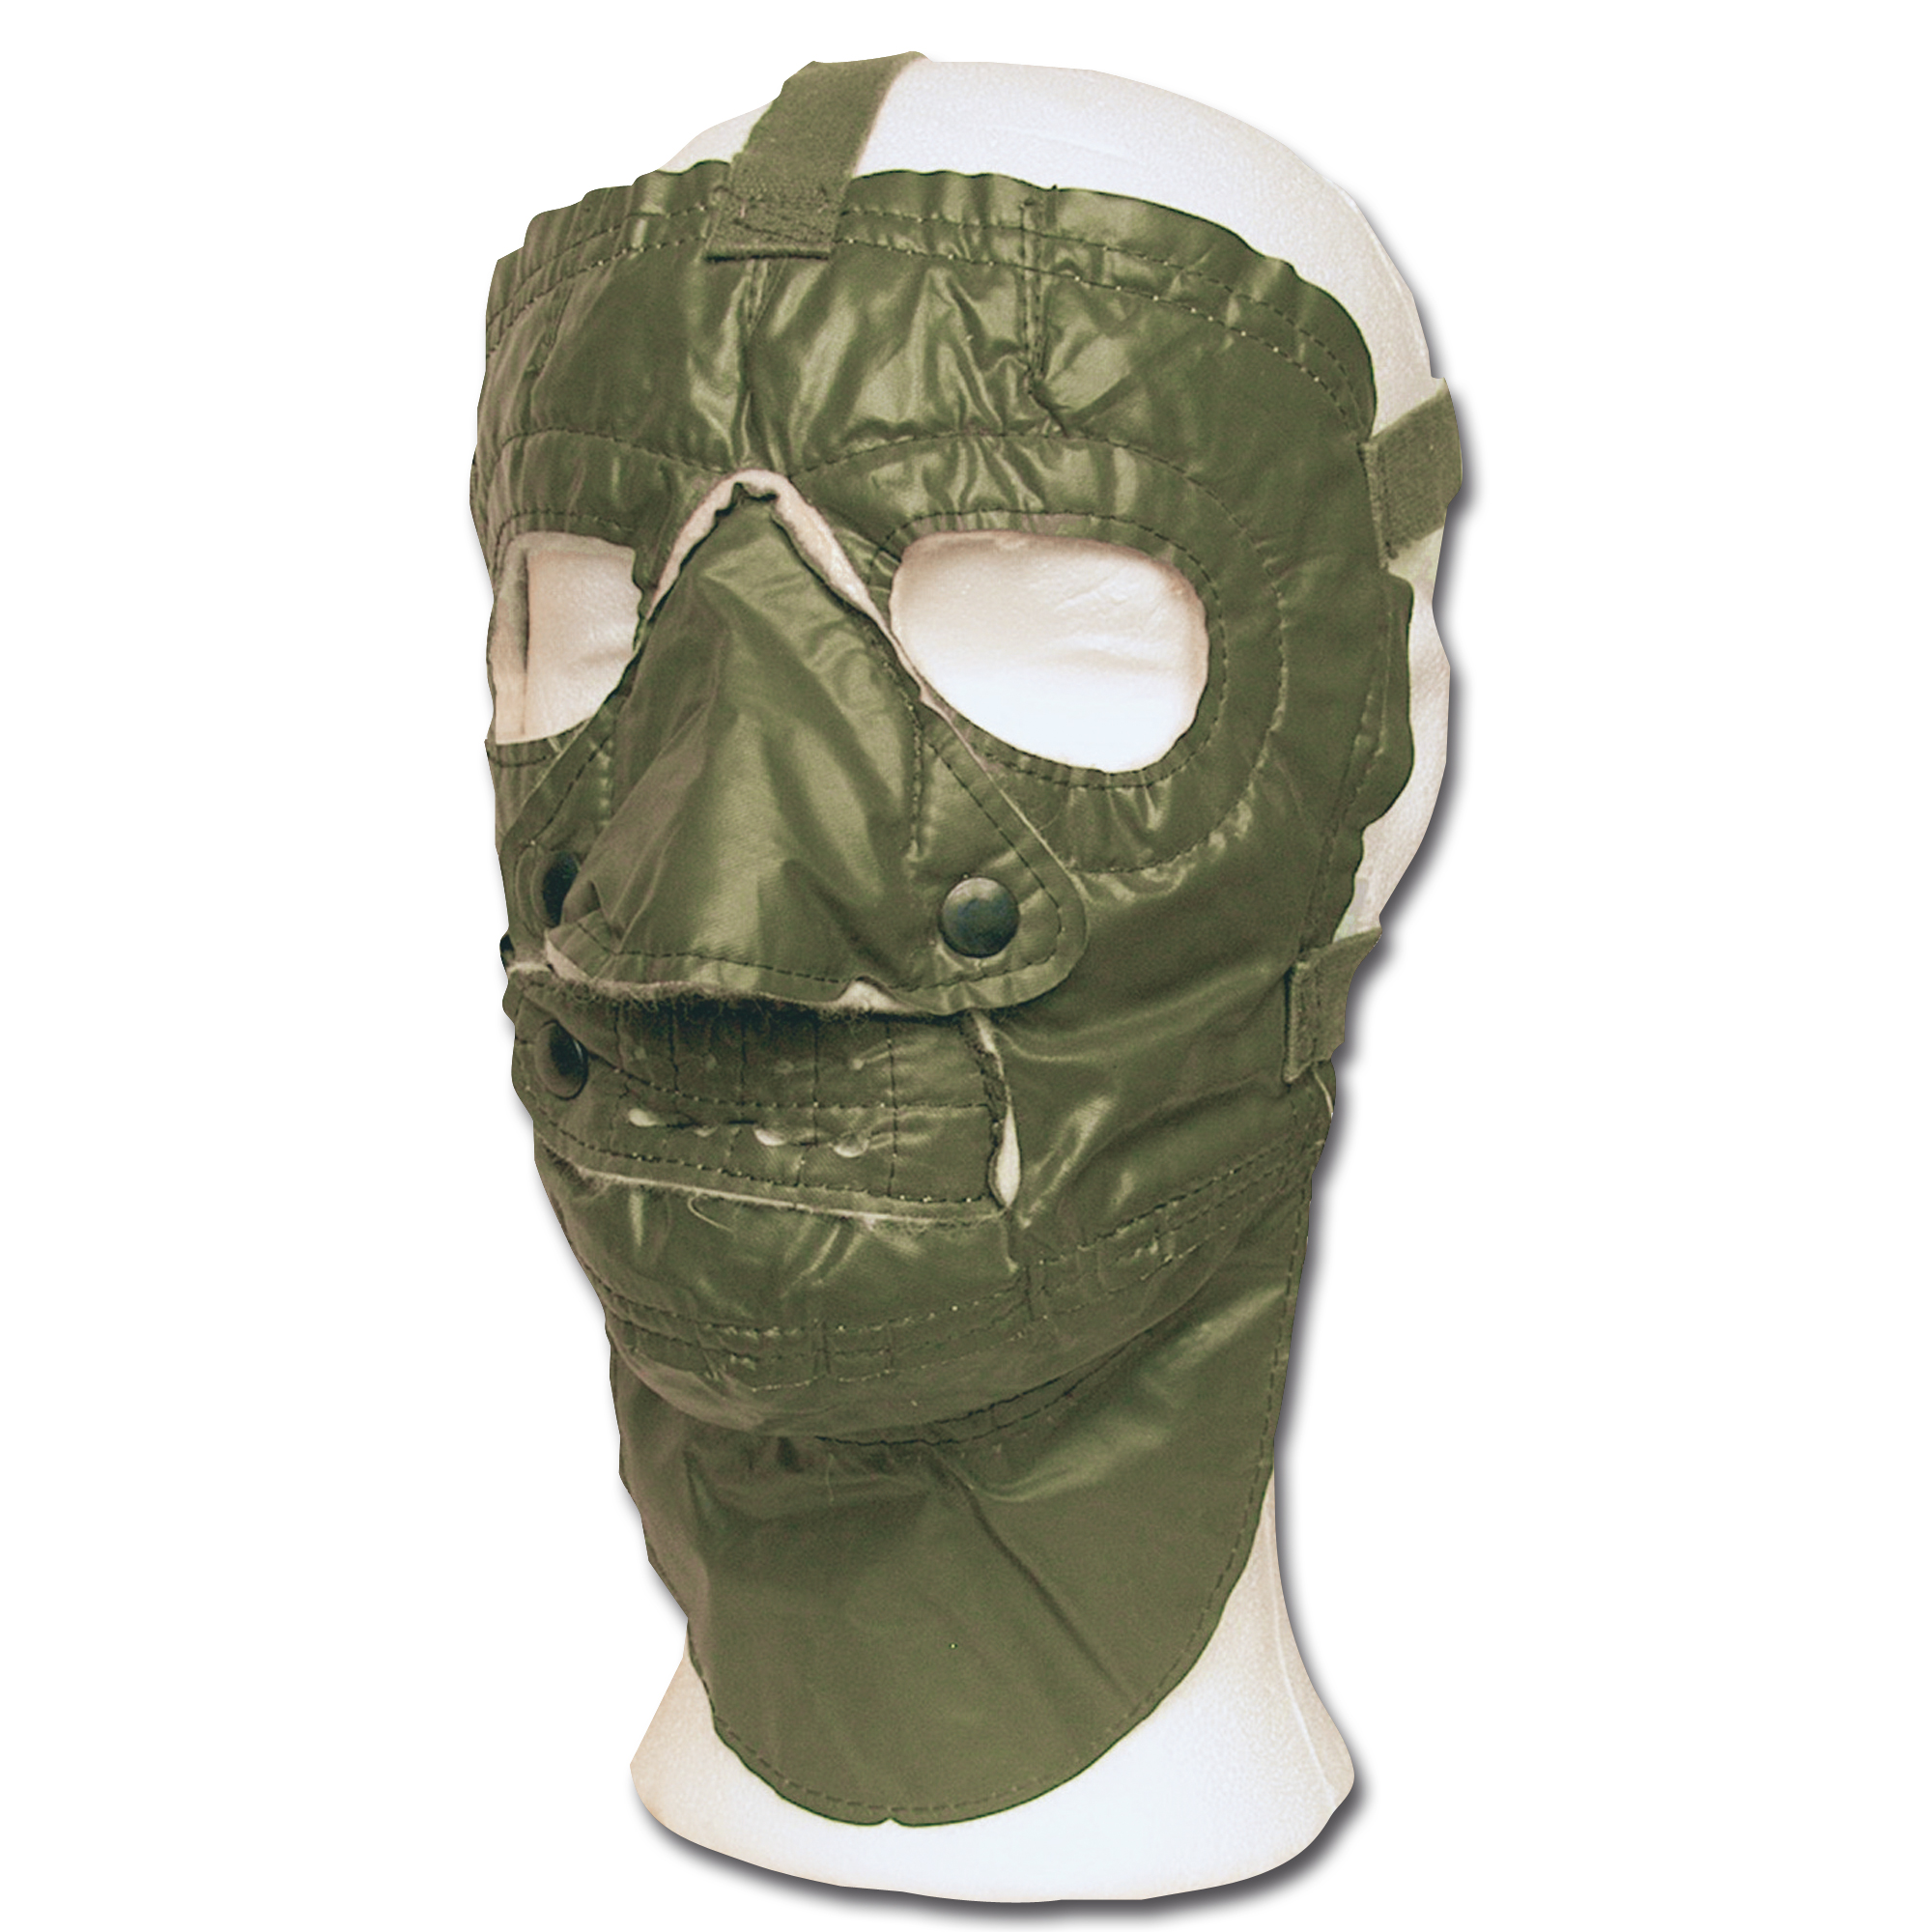 U.S. Army Extreme Cold Mask Used olive